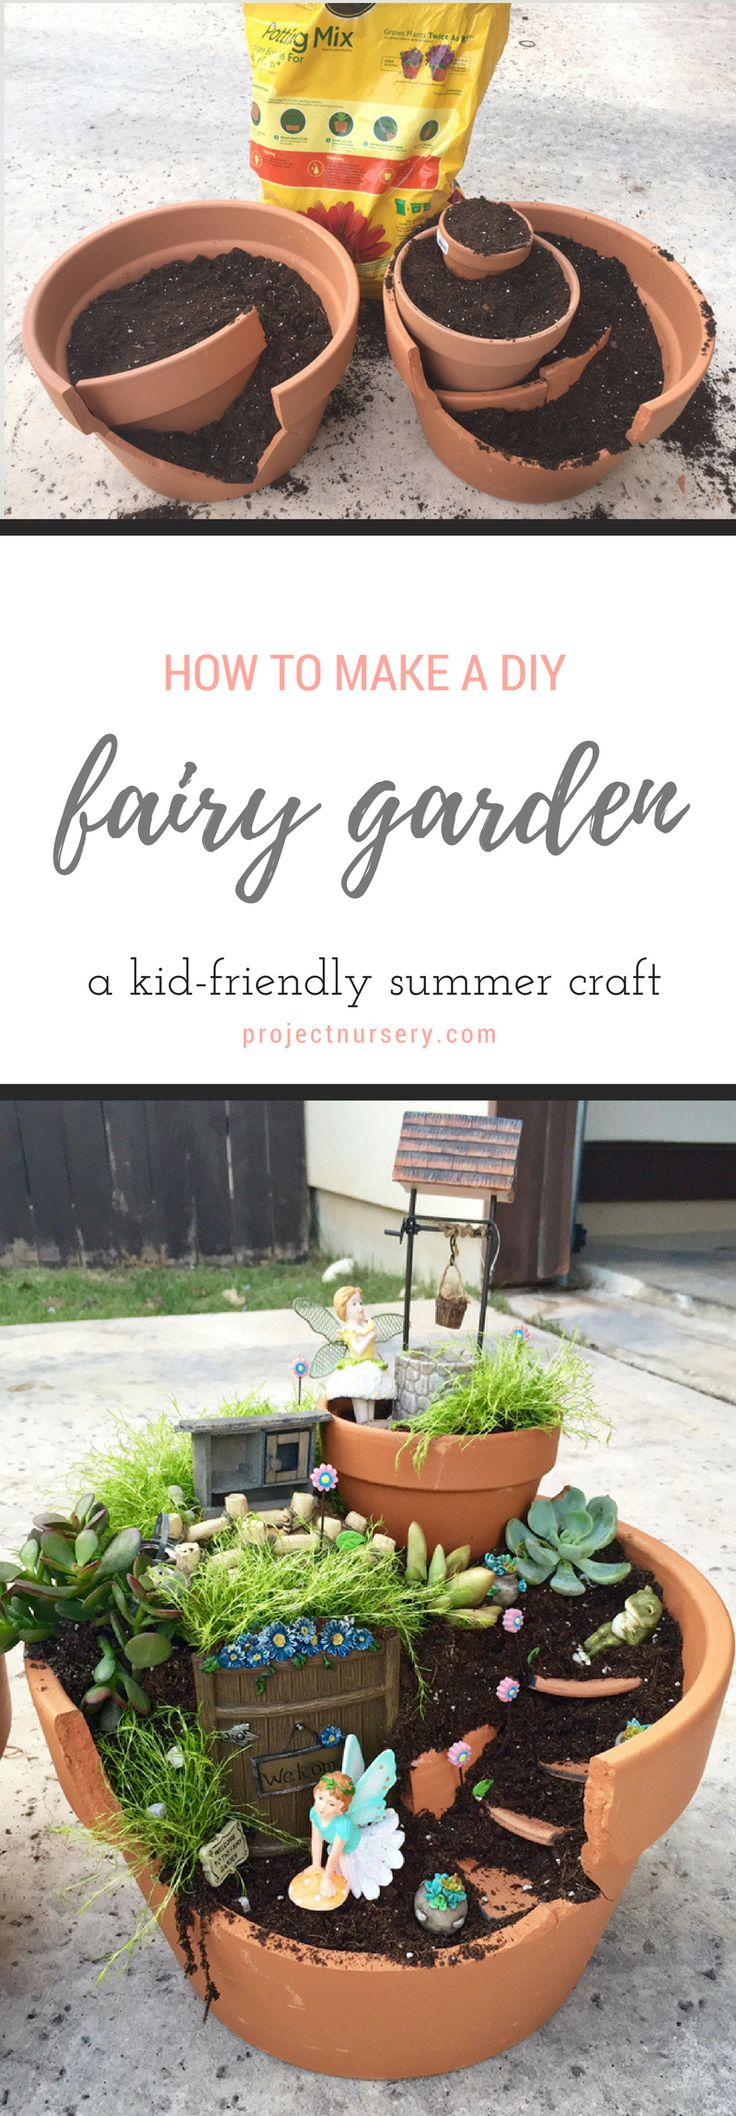 Add this fun summer DIY to your to-do list. Your kids will LOVE making their own fairy garden! (And, the supplies will cost you less than $50.)